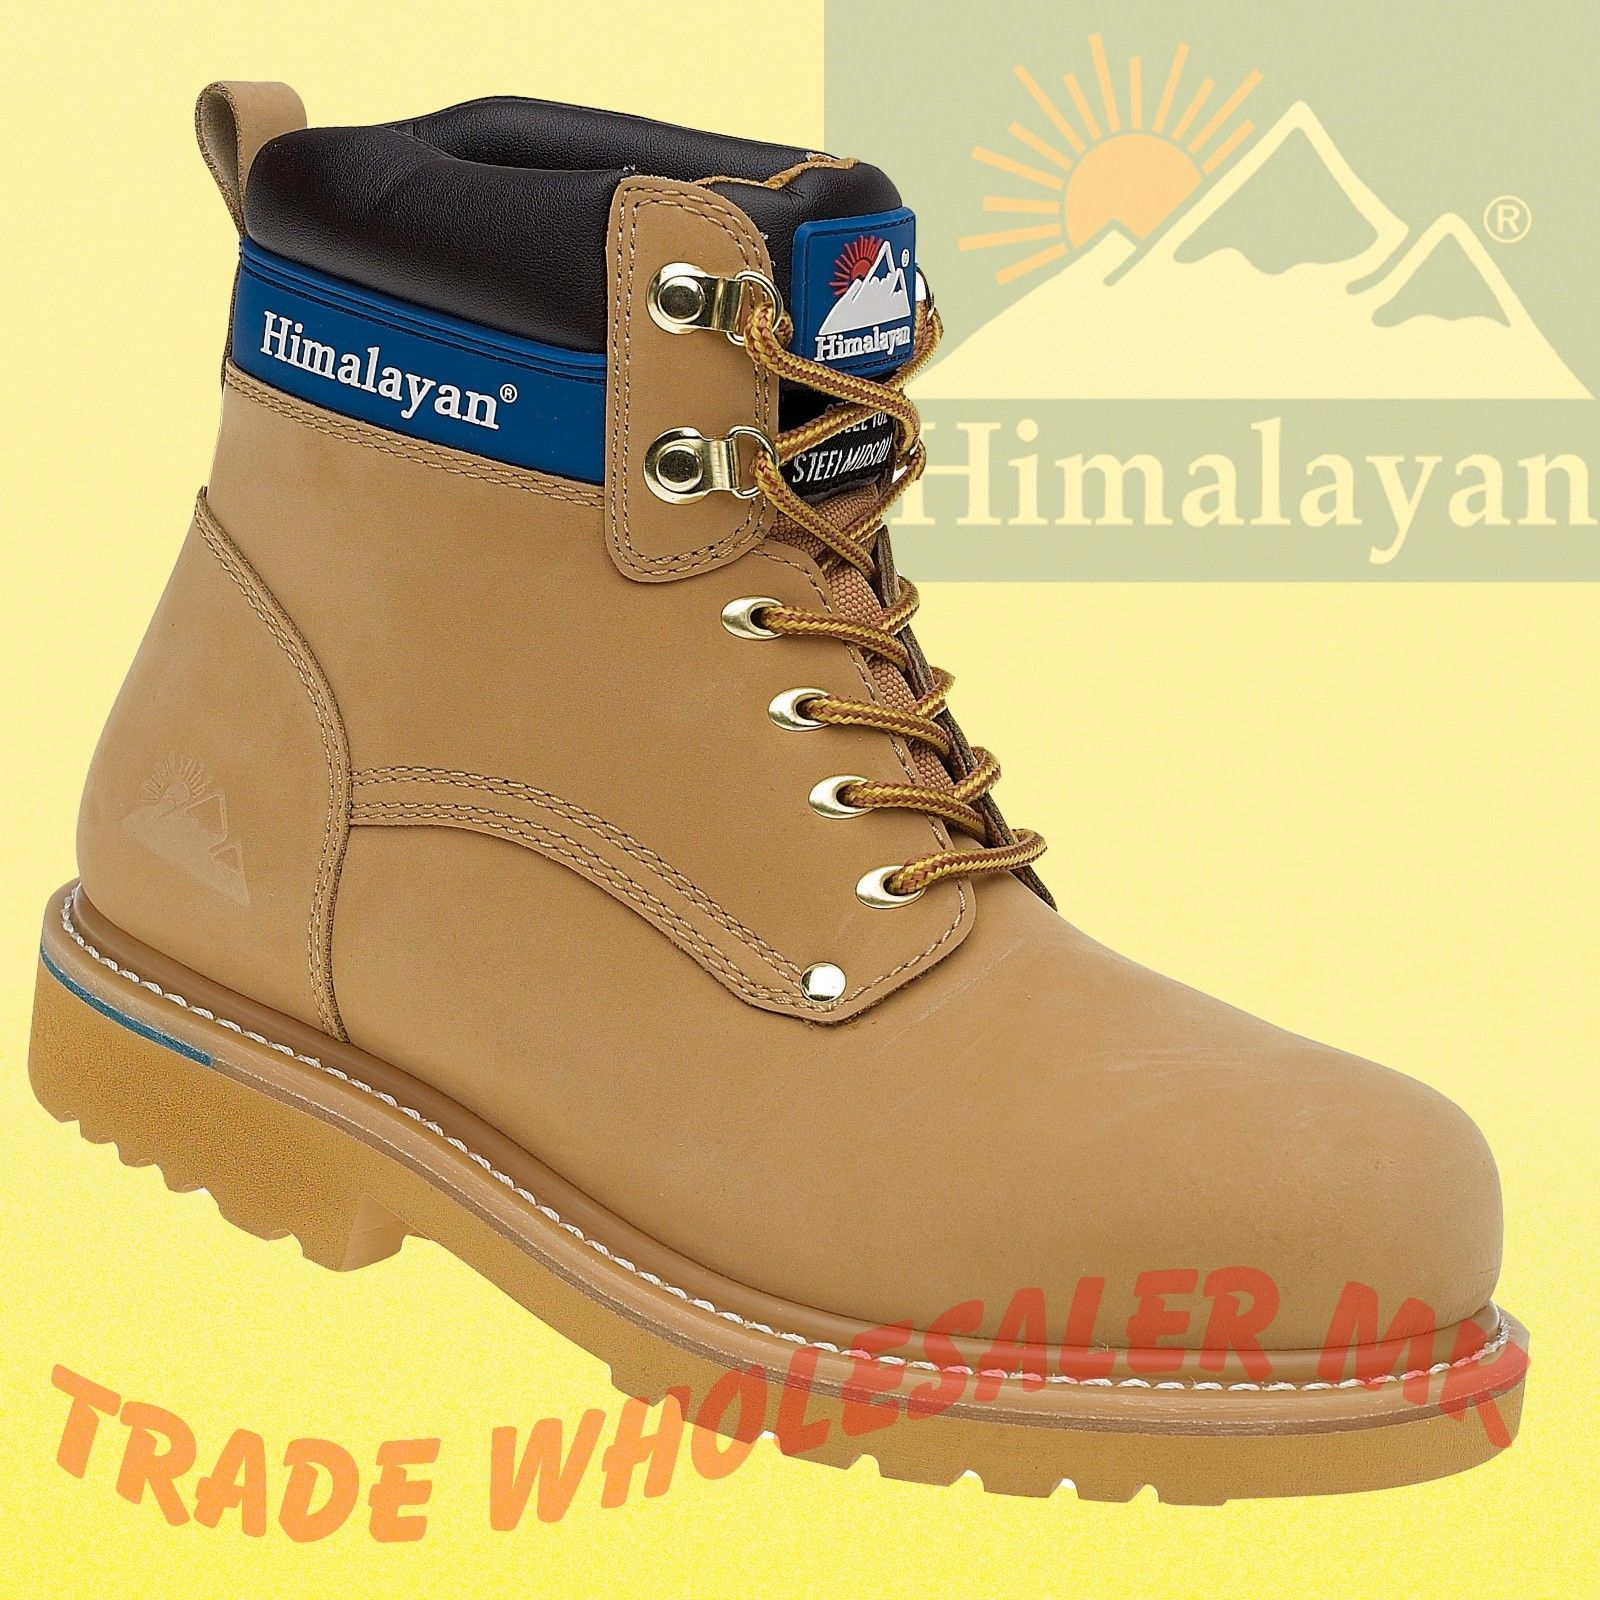 77a43d7ab46 Himalayan Steel Toe Safety Work Boots Goodyear Welted 3100/3402 UK 6-12 SBP  SRA